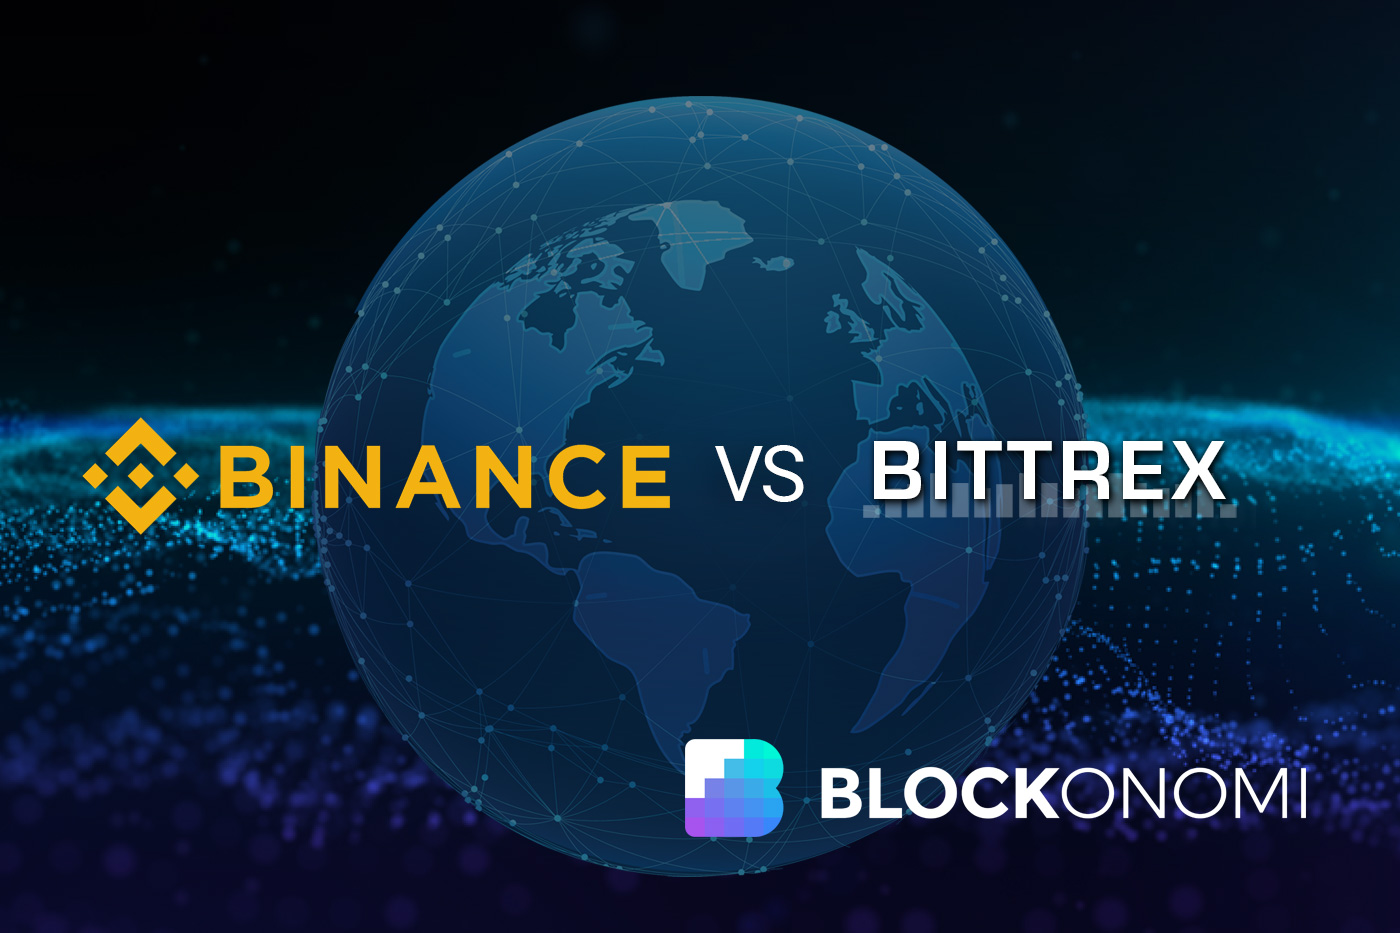 Binance vs Bittrex Review